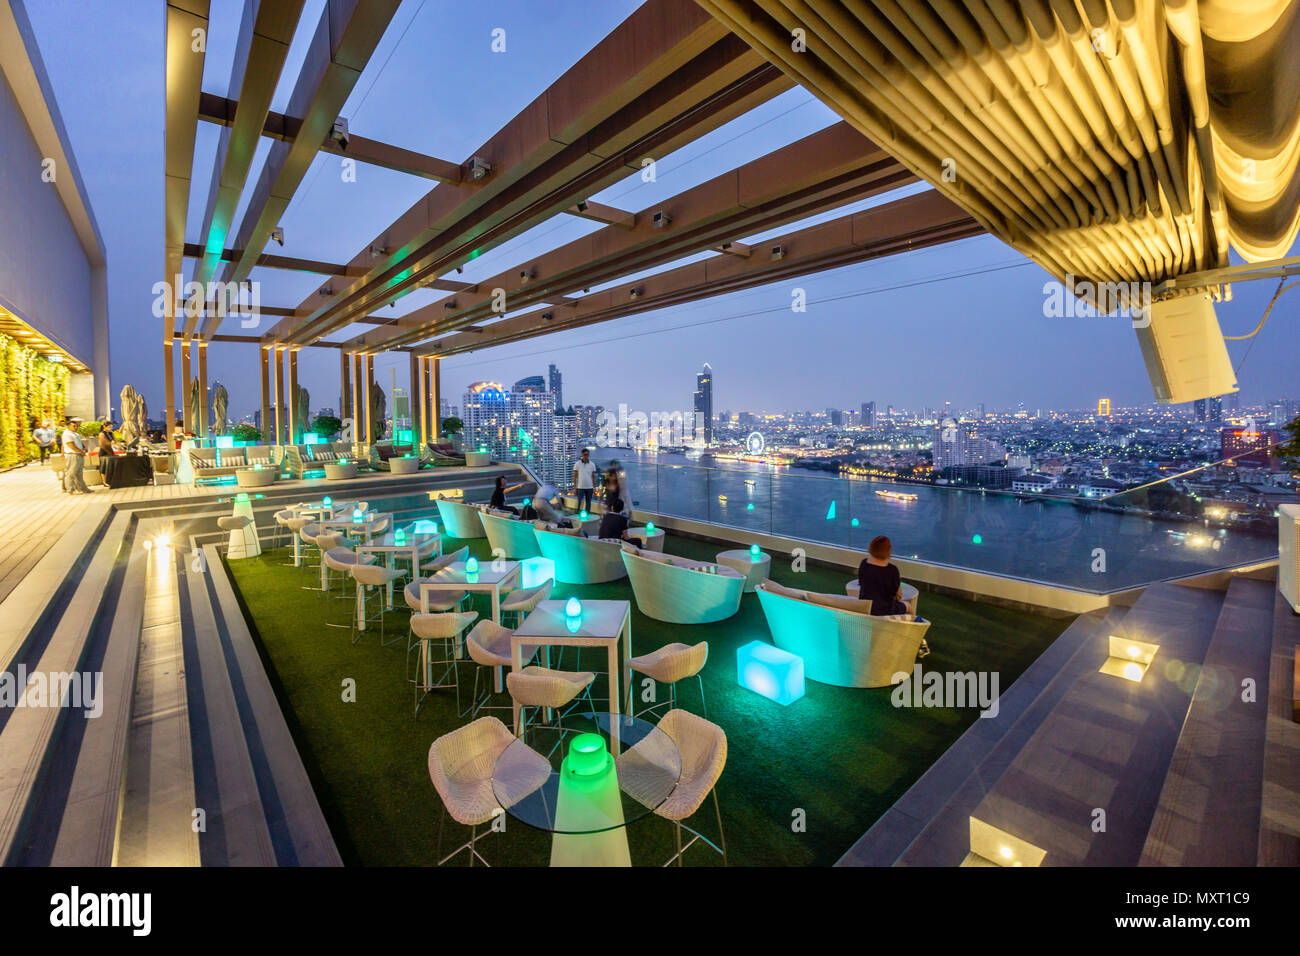 Haltung in der Skybar, Hotel Avani, Skyline View Point, Skybar, Lounge, Dachterrasse, Bar, Bangkok, Thailand Stockbild